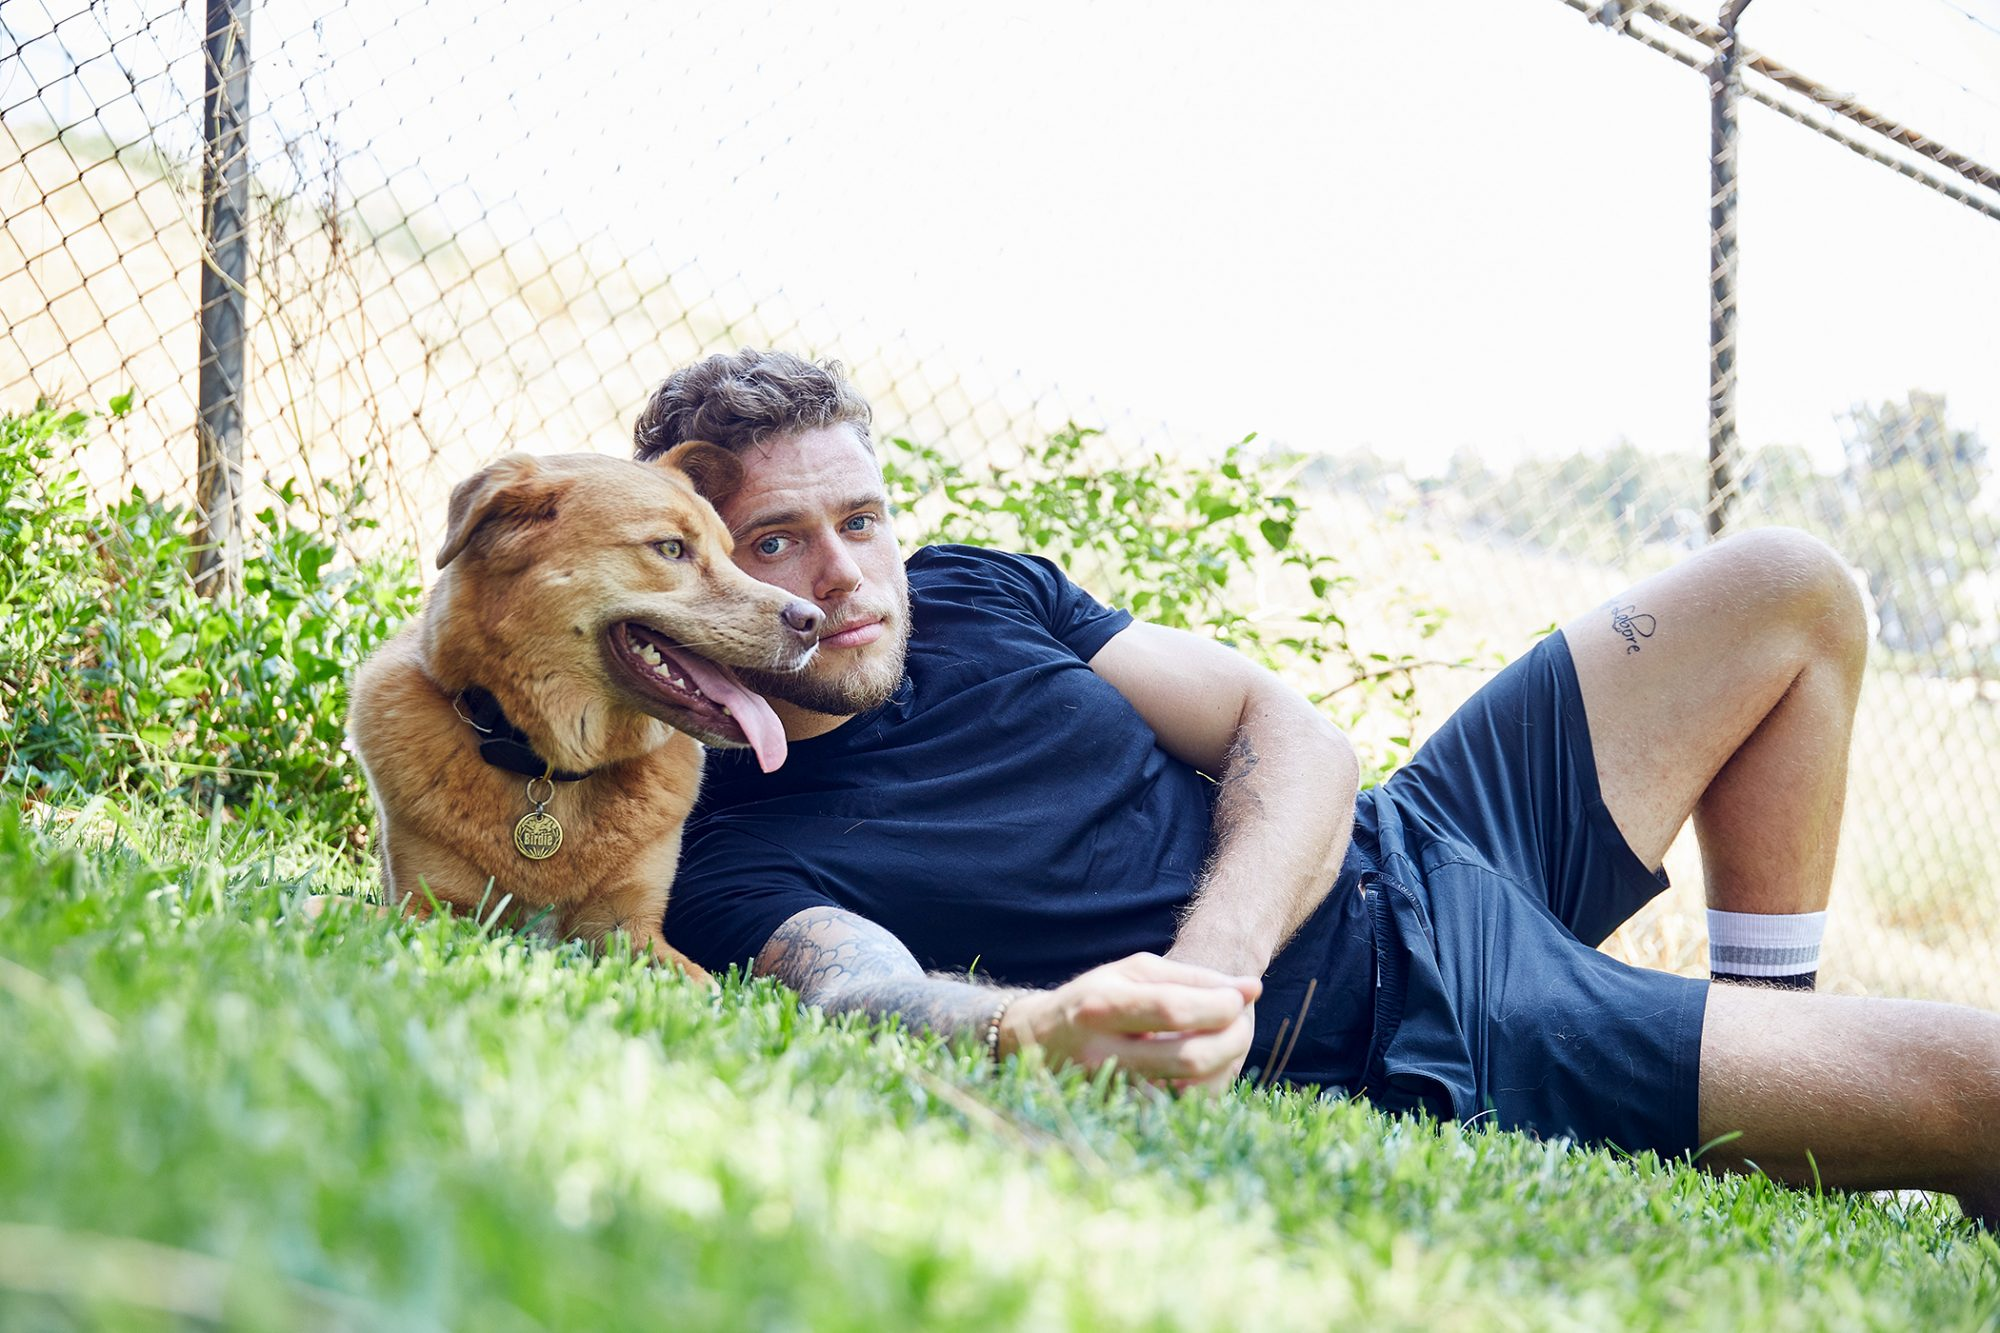 Gus Kenworthy laying in grass with Birdie